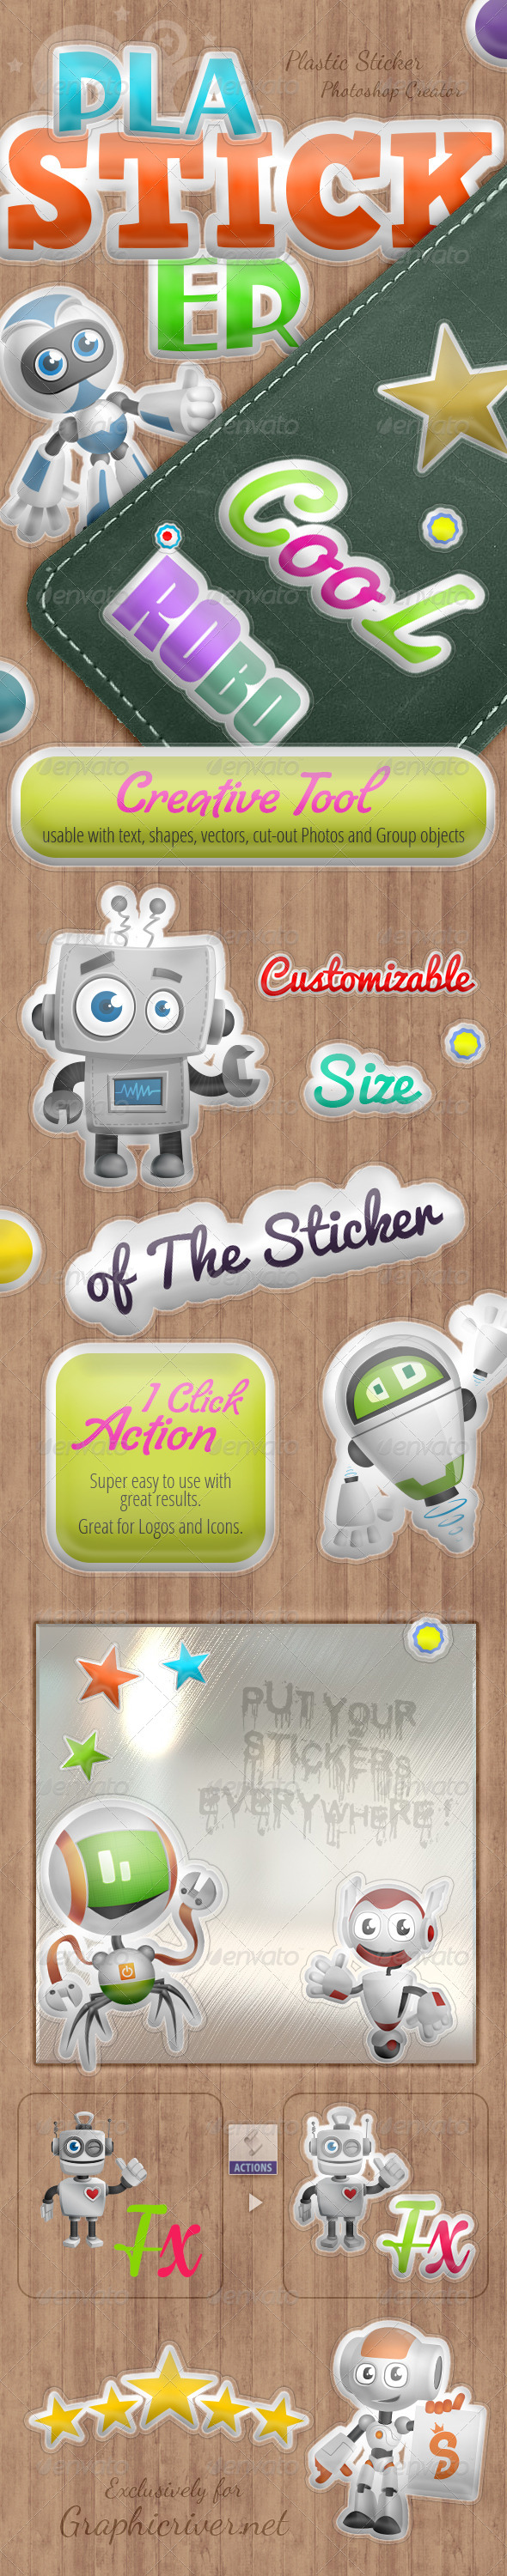 GraphicRiver Plasticker Photoshop Action 7564295